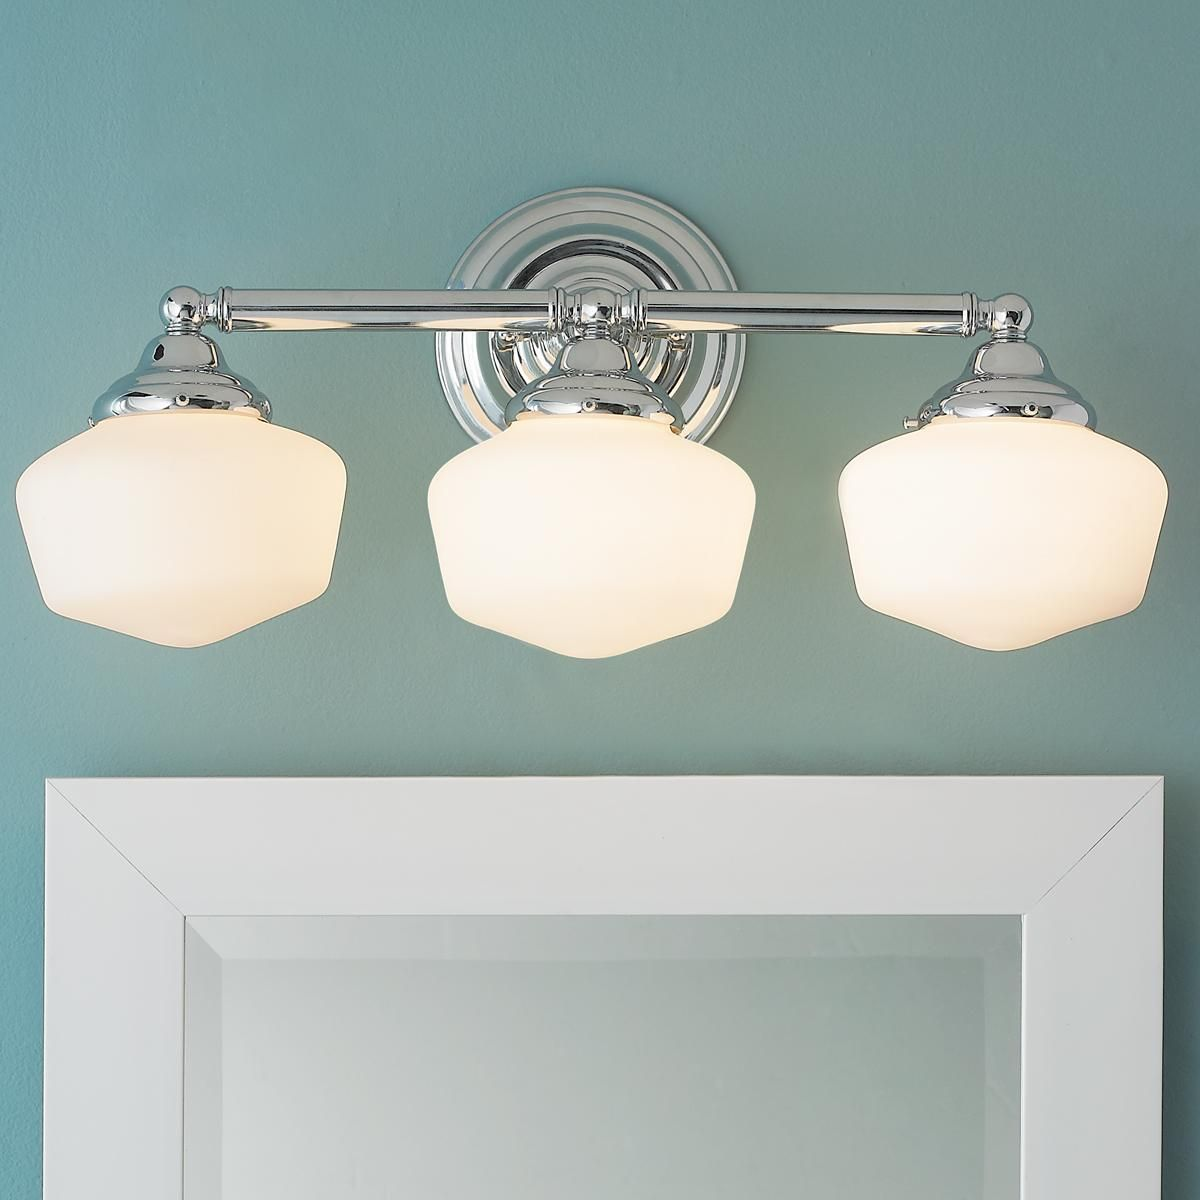 Schoolhouse Bath Light 3 Light Vintage Bathroom Lighting Bath